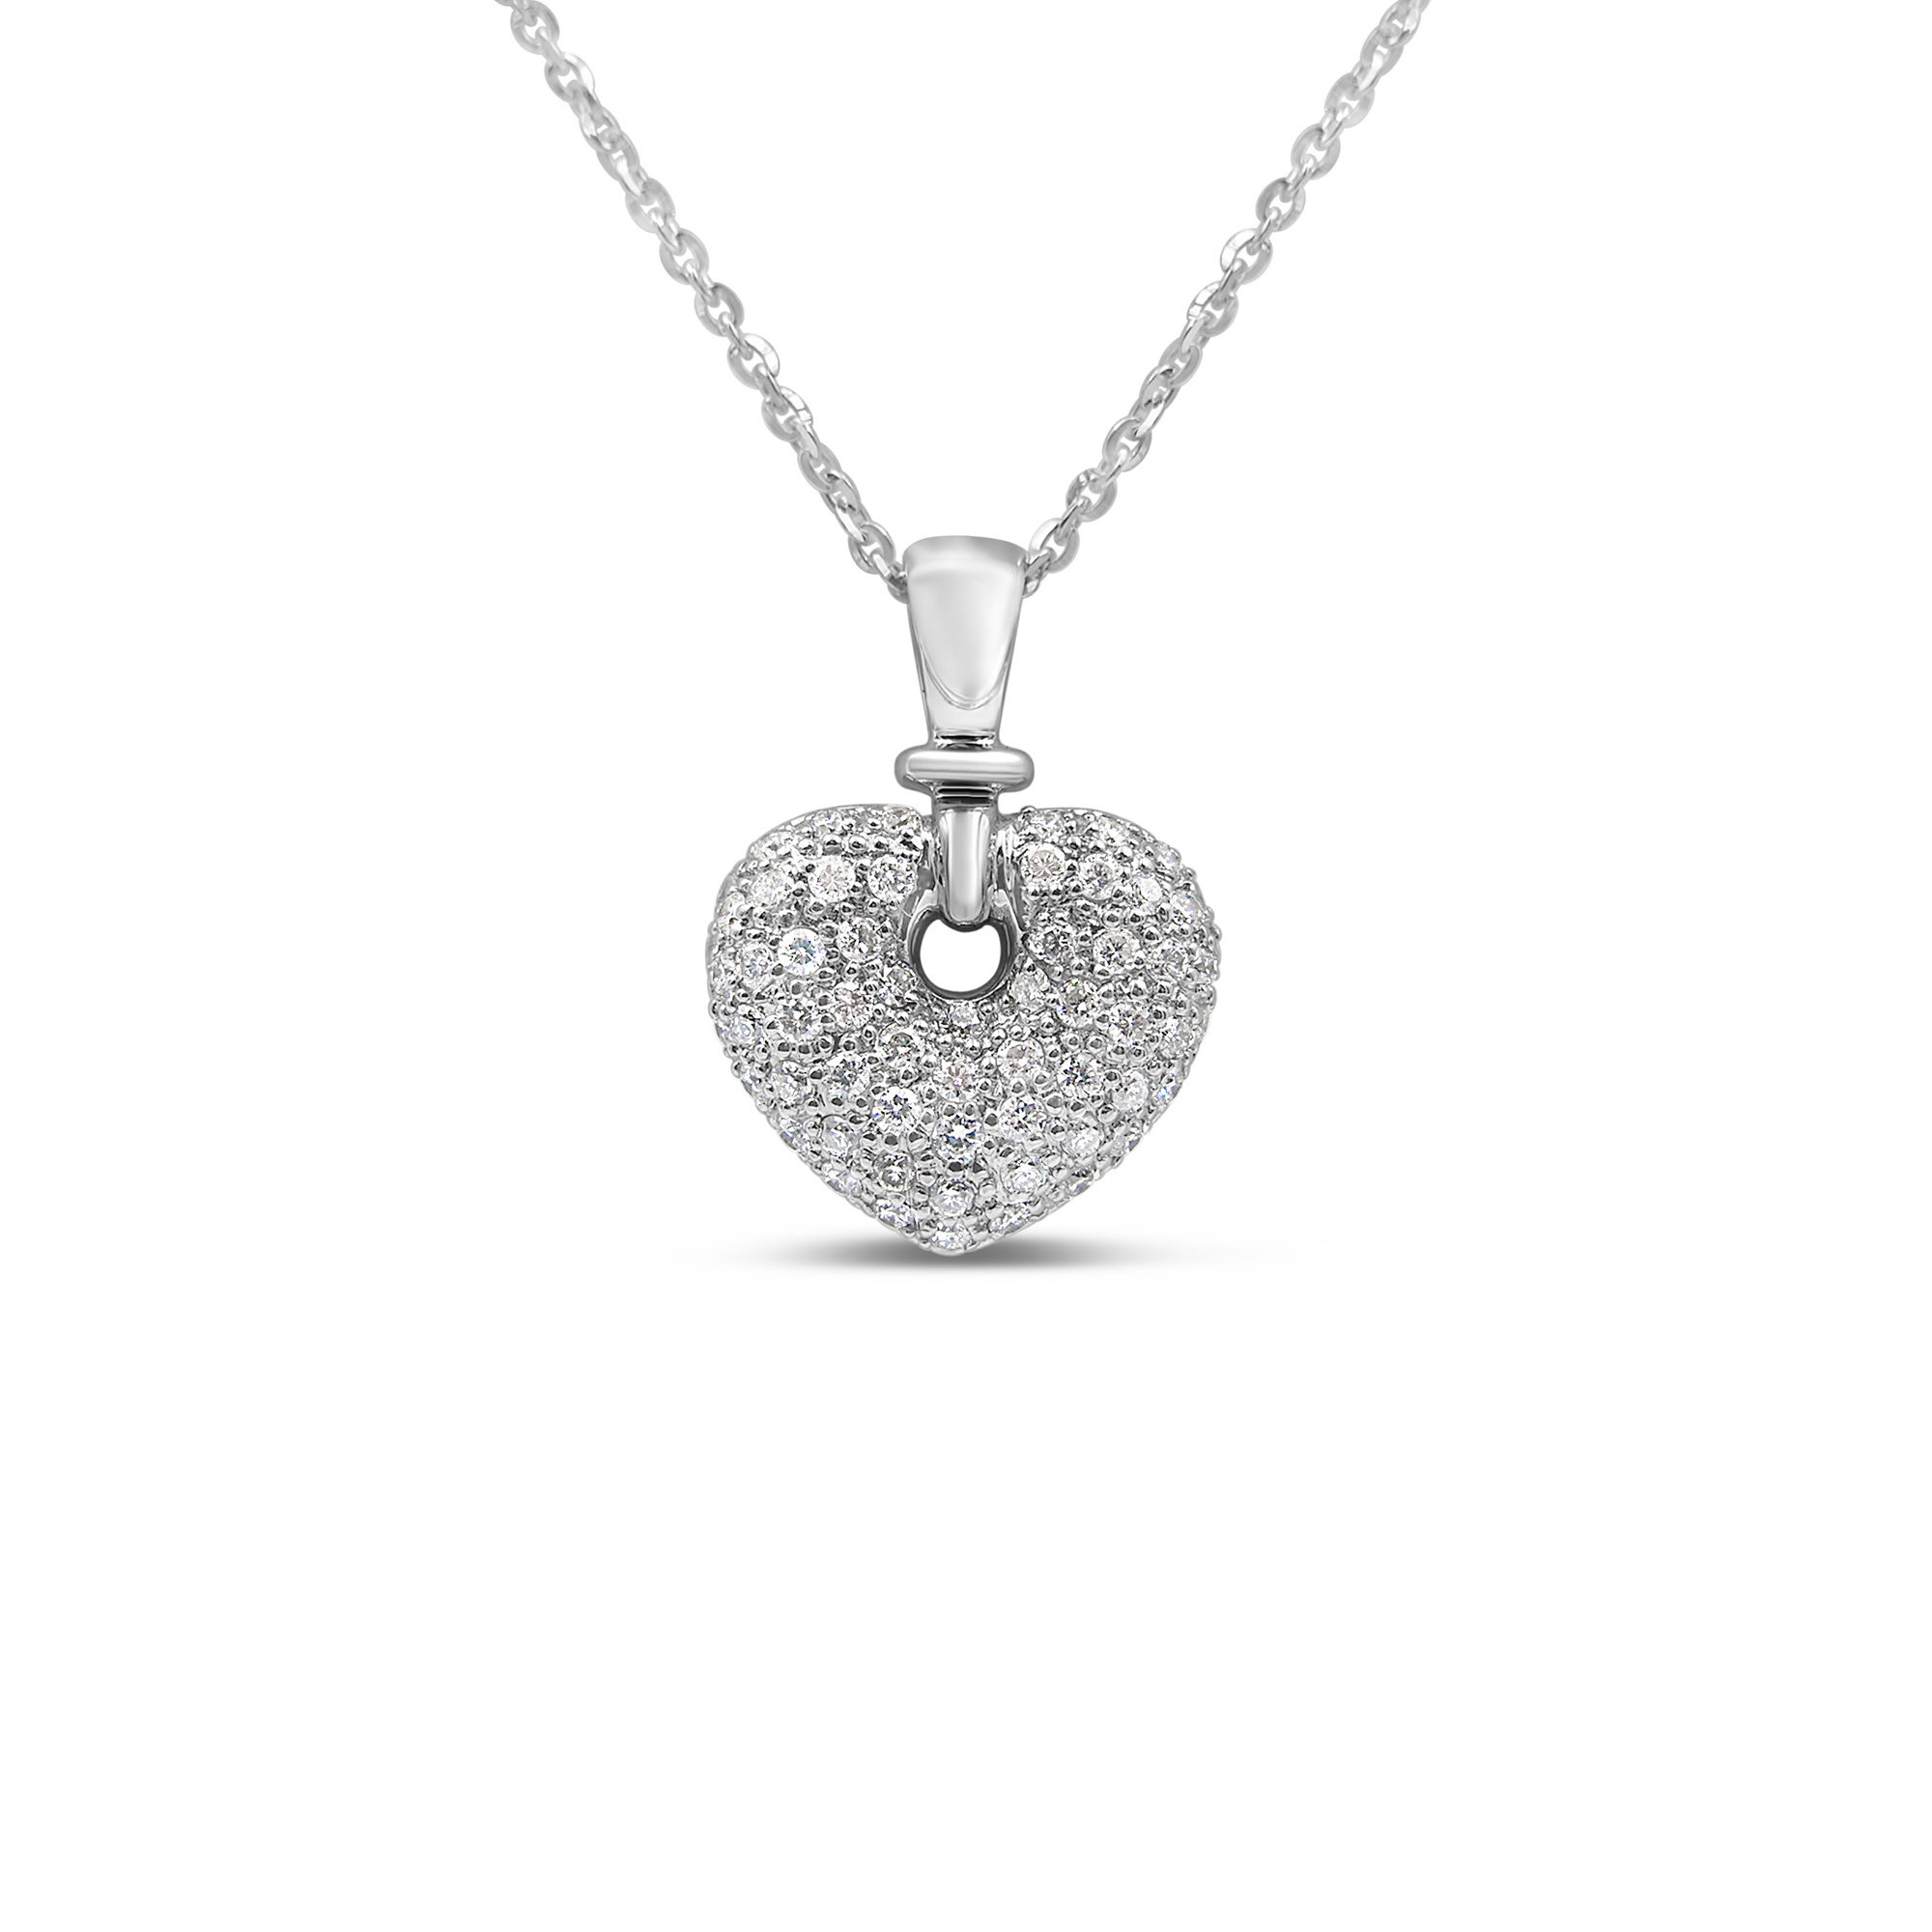 18kt white gold heart pendant with 0.54 ct diamonds